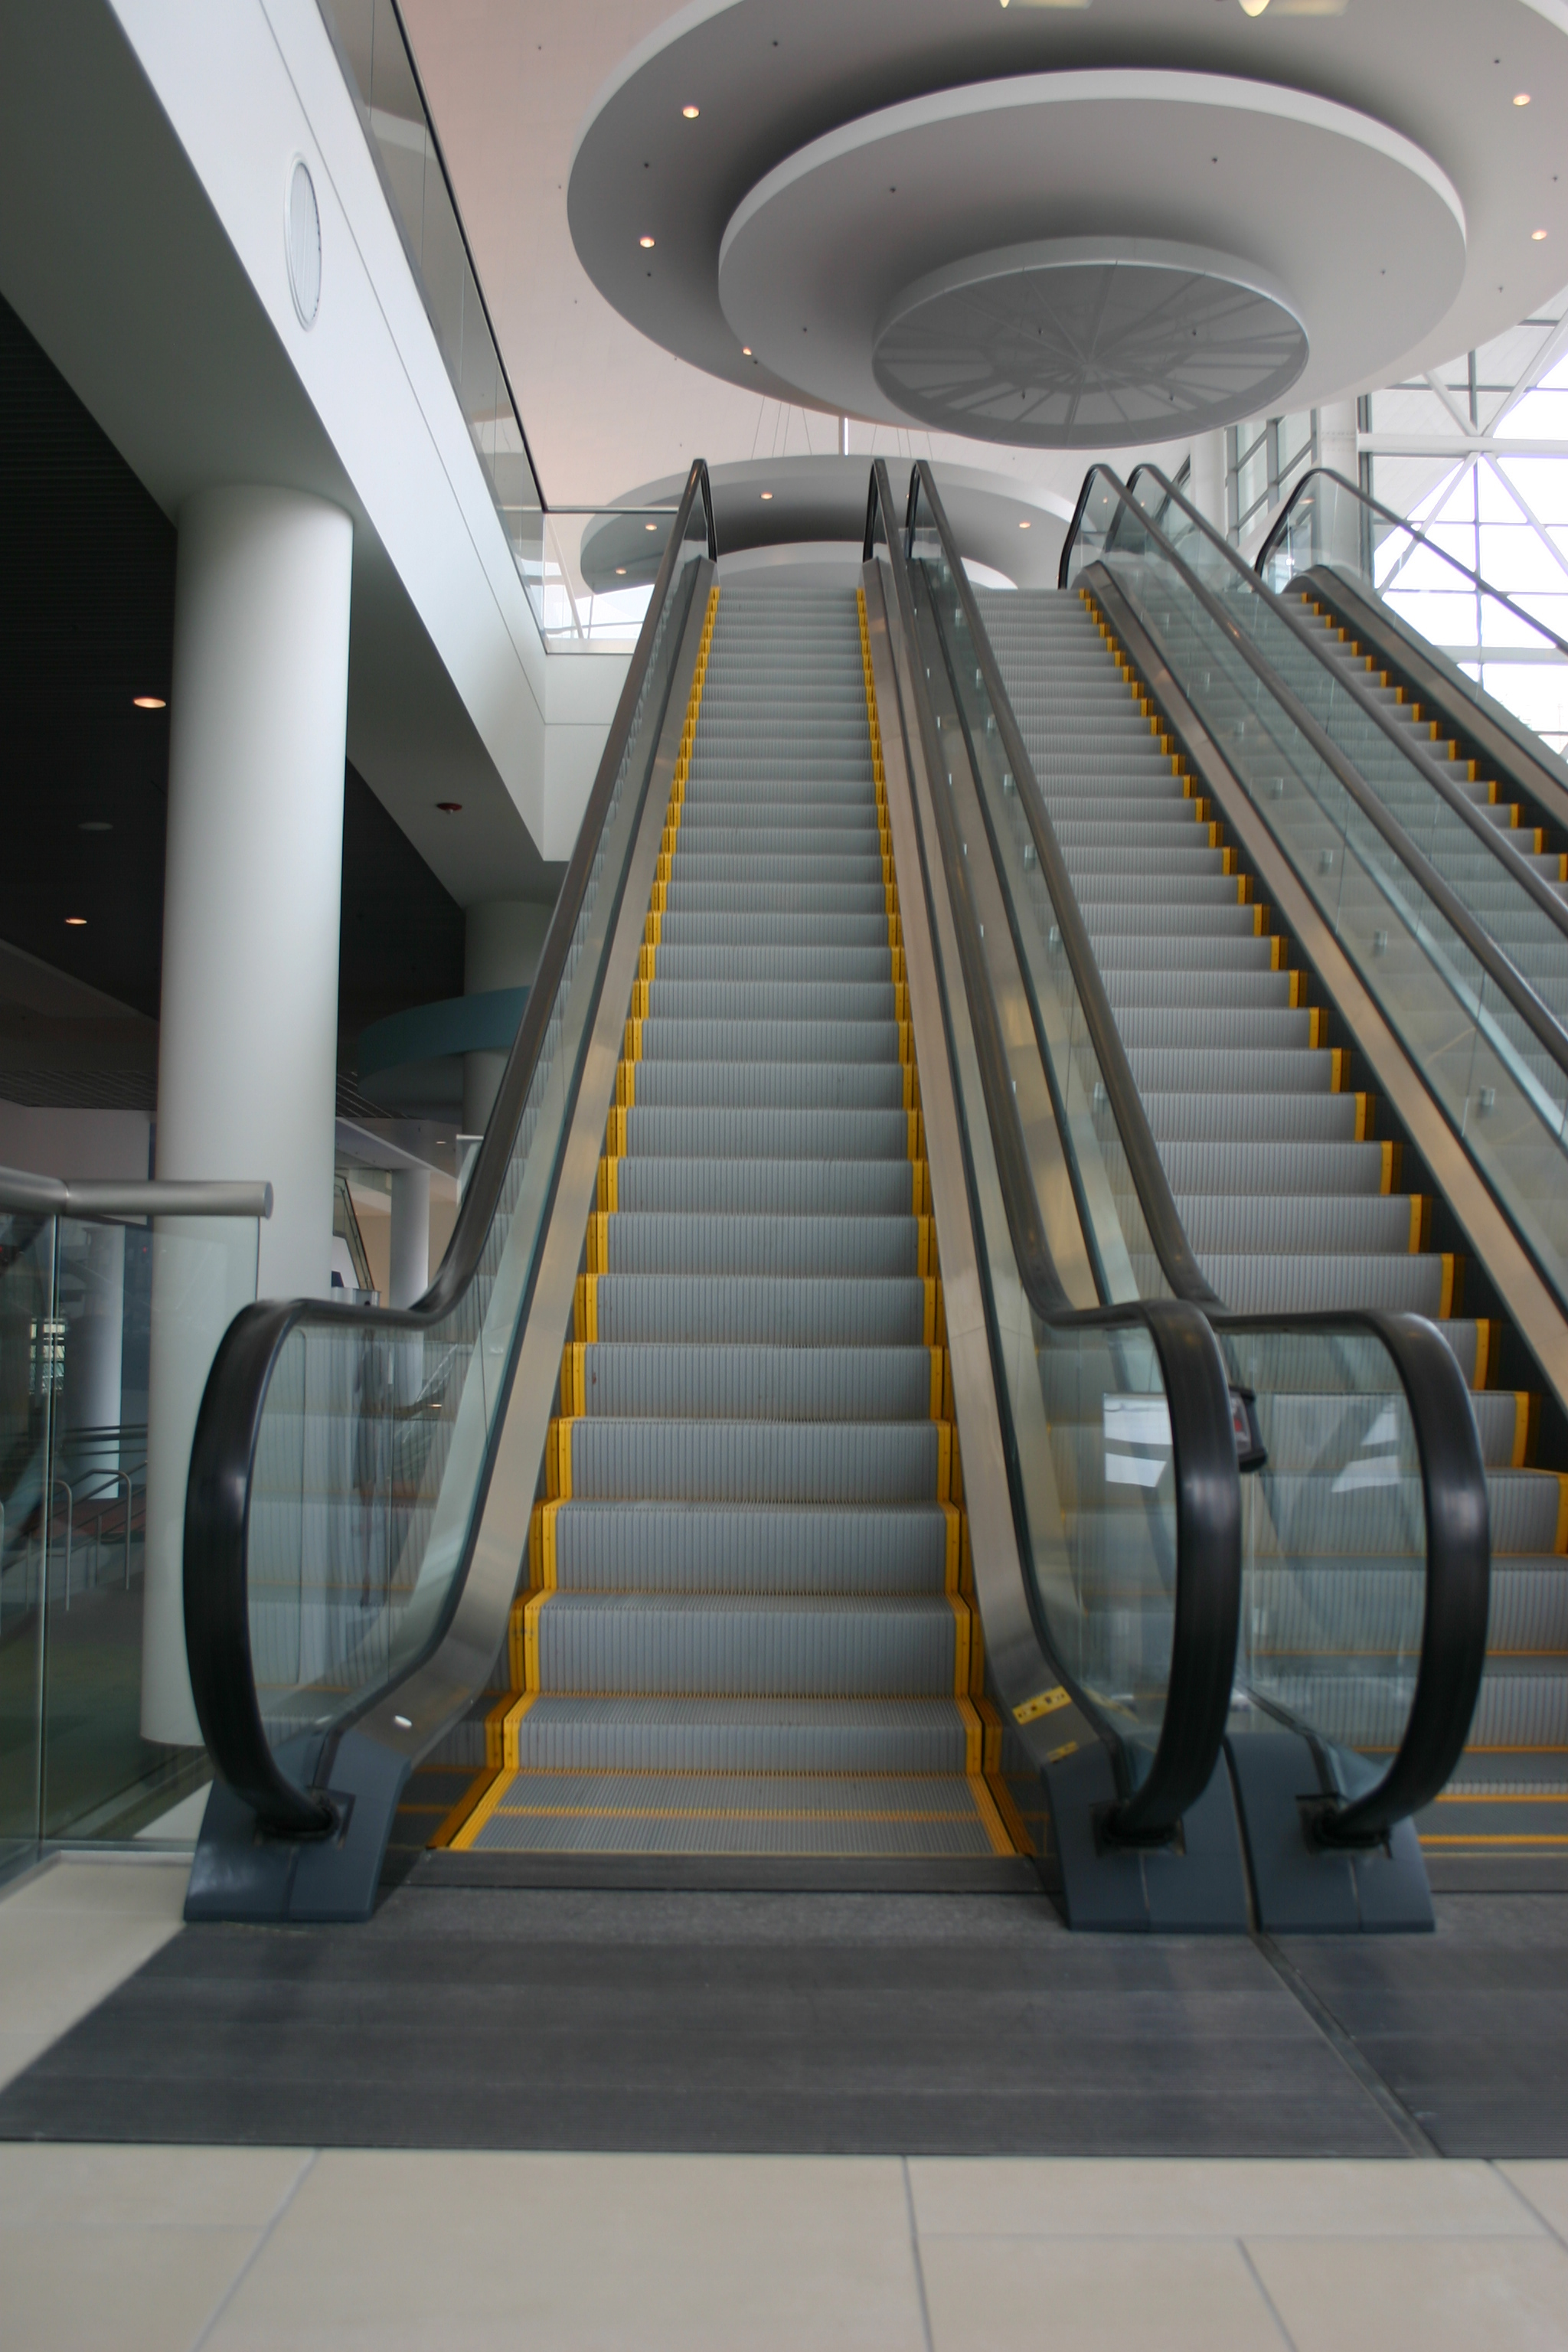 Go to the Laughing Escalator page